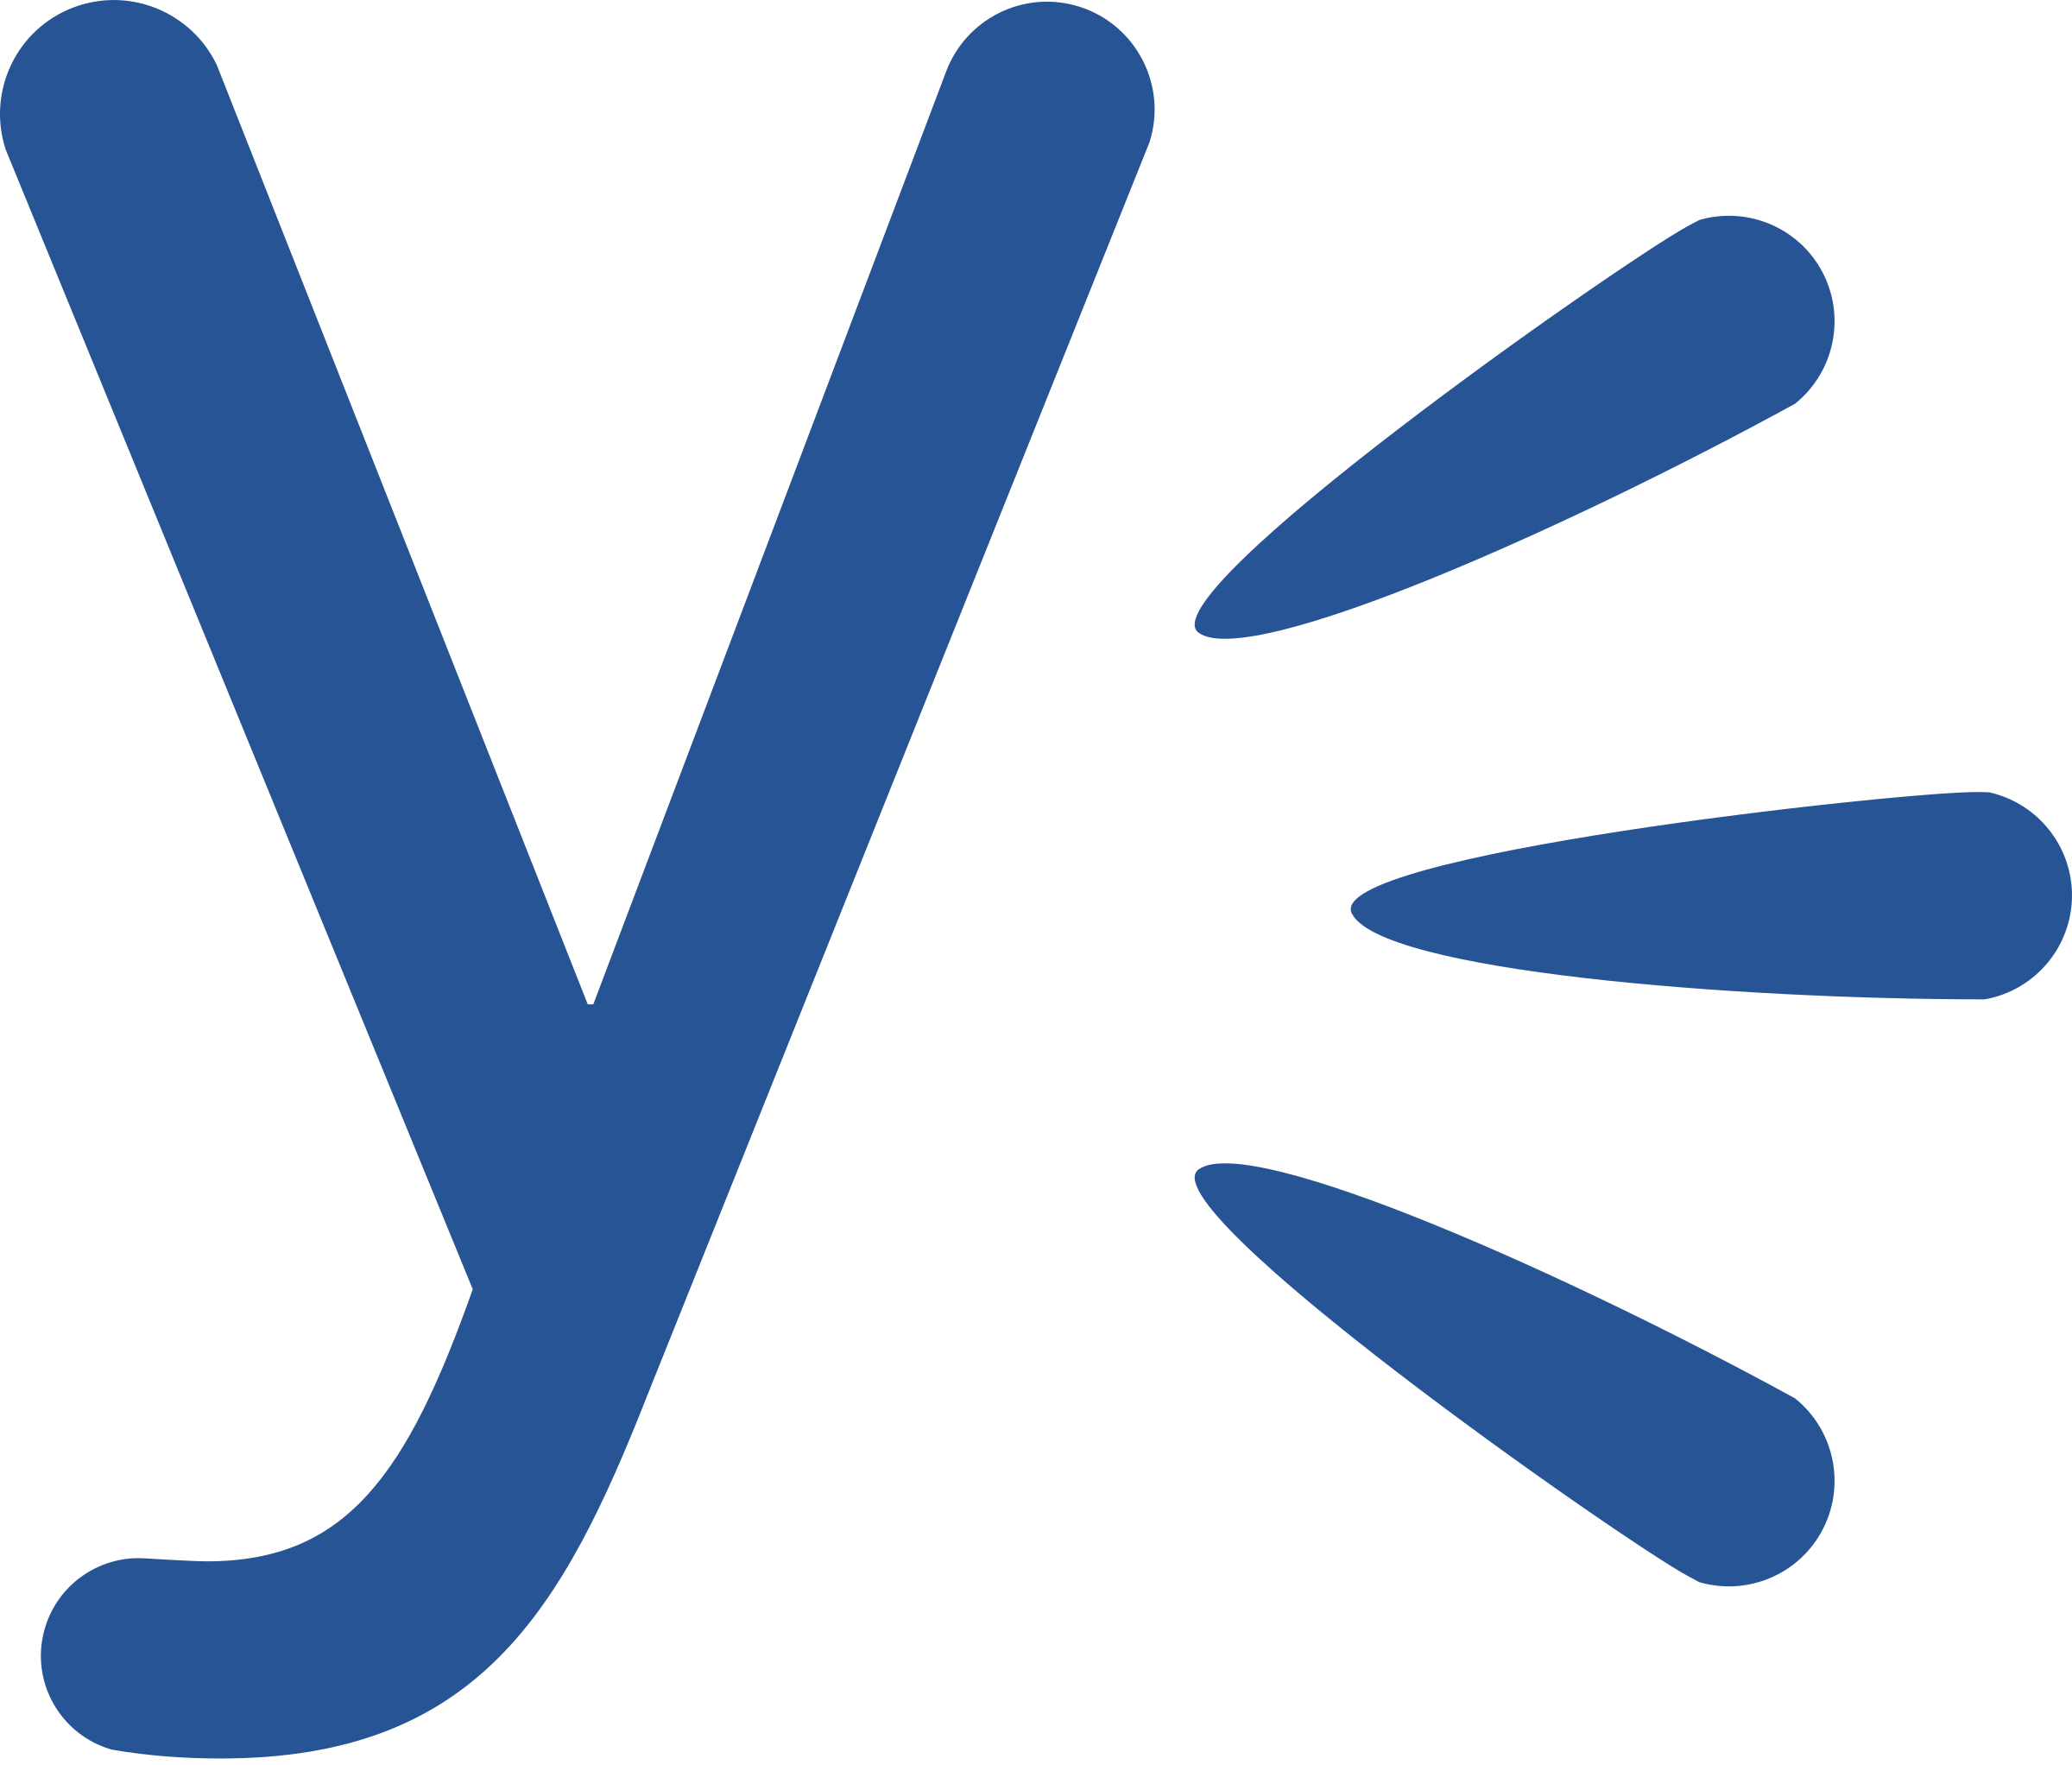 Yammer Logo PNG Transparent & SVG Vector.